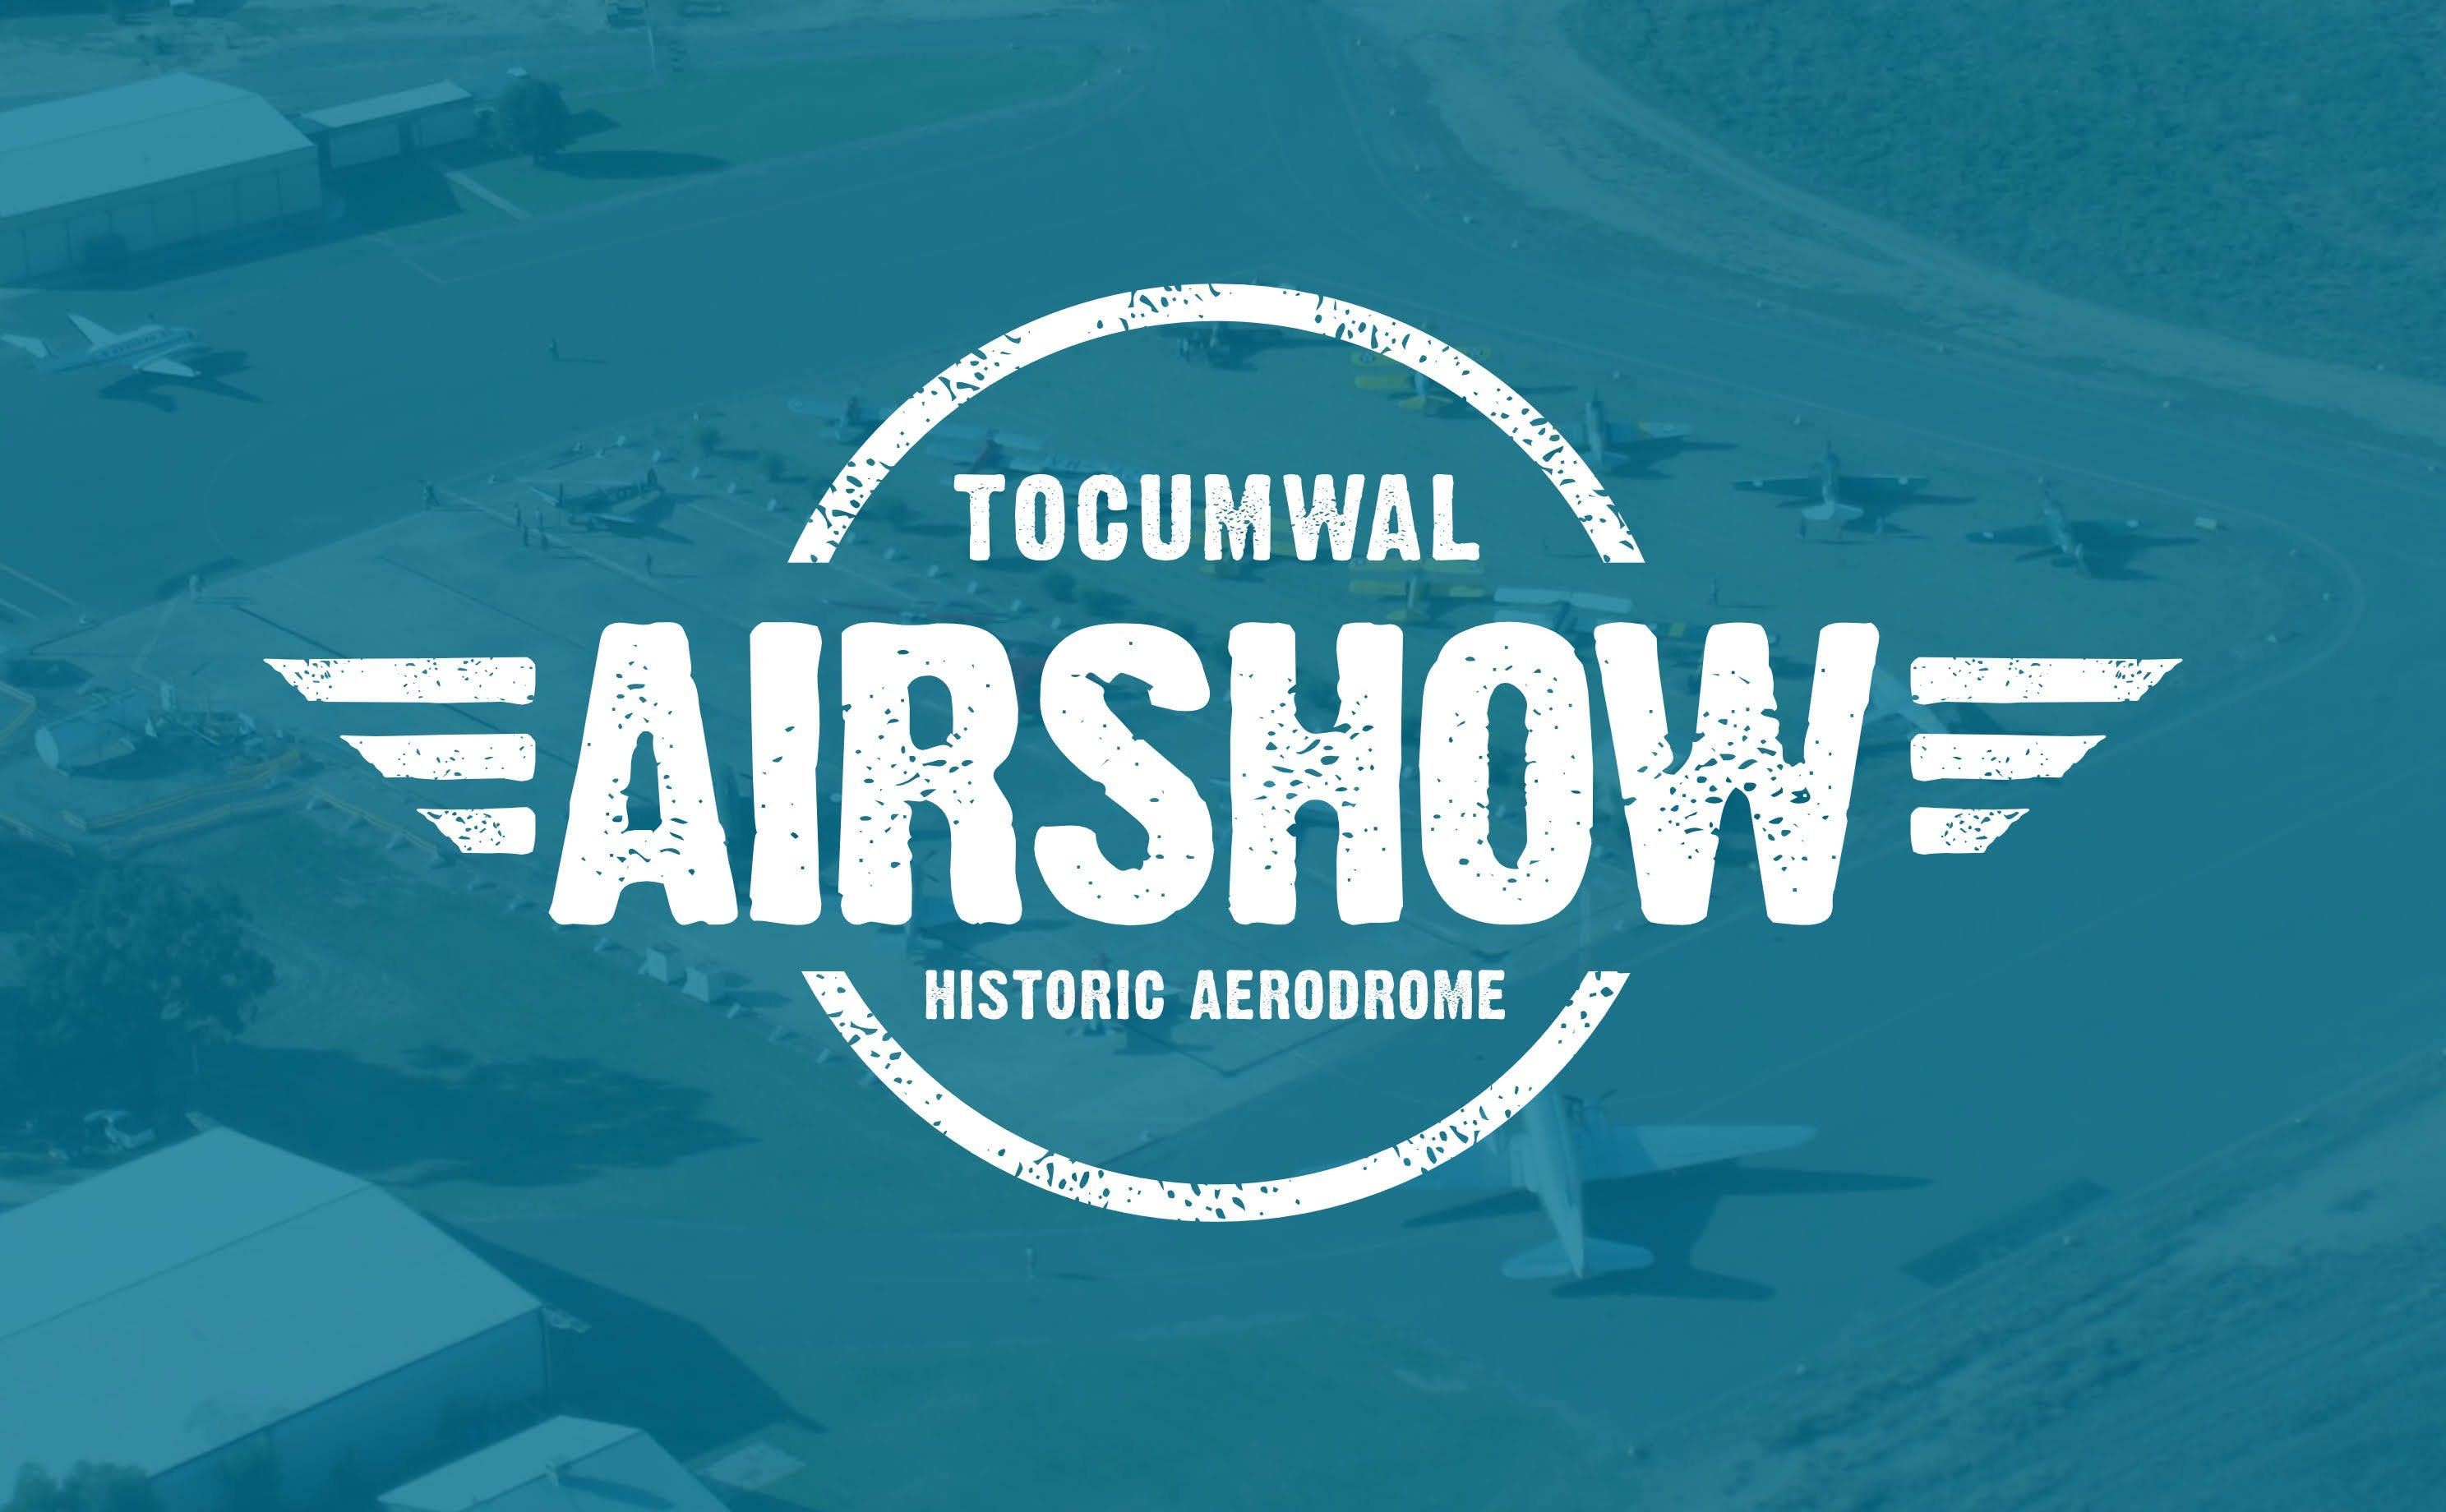 Tocumwal Airshow - Pubs and Clubs